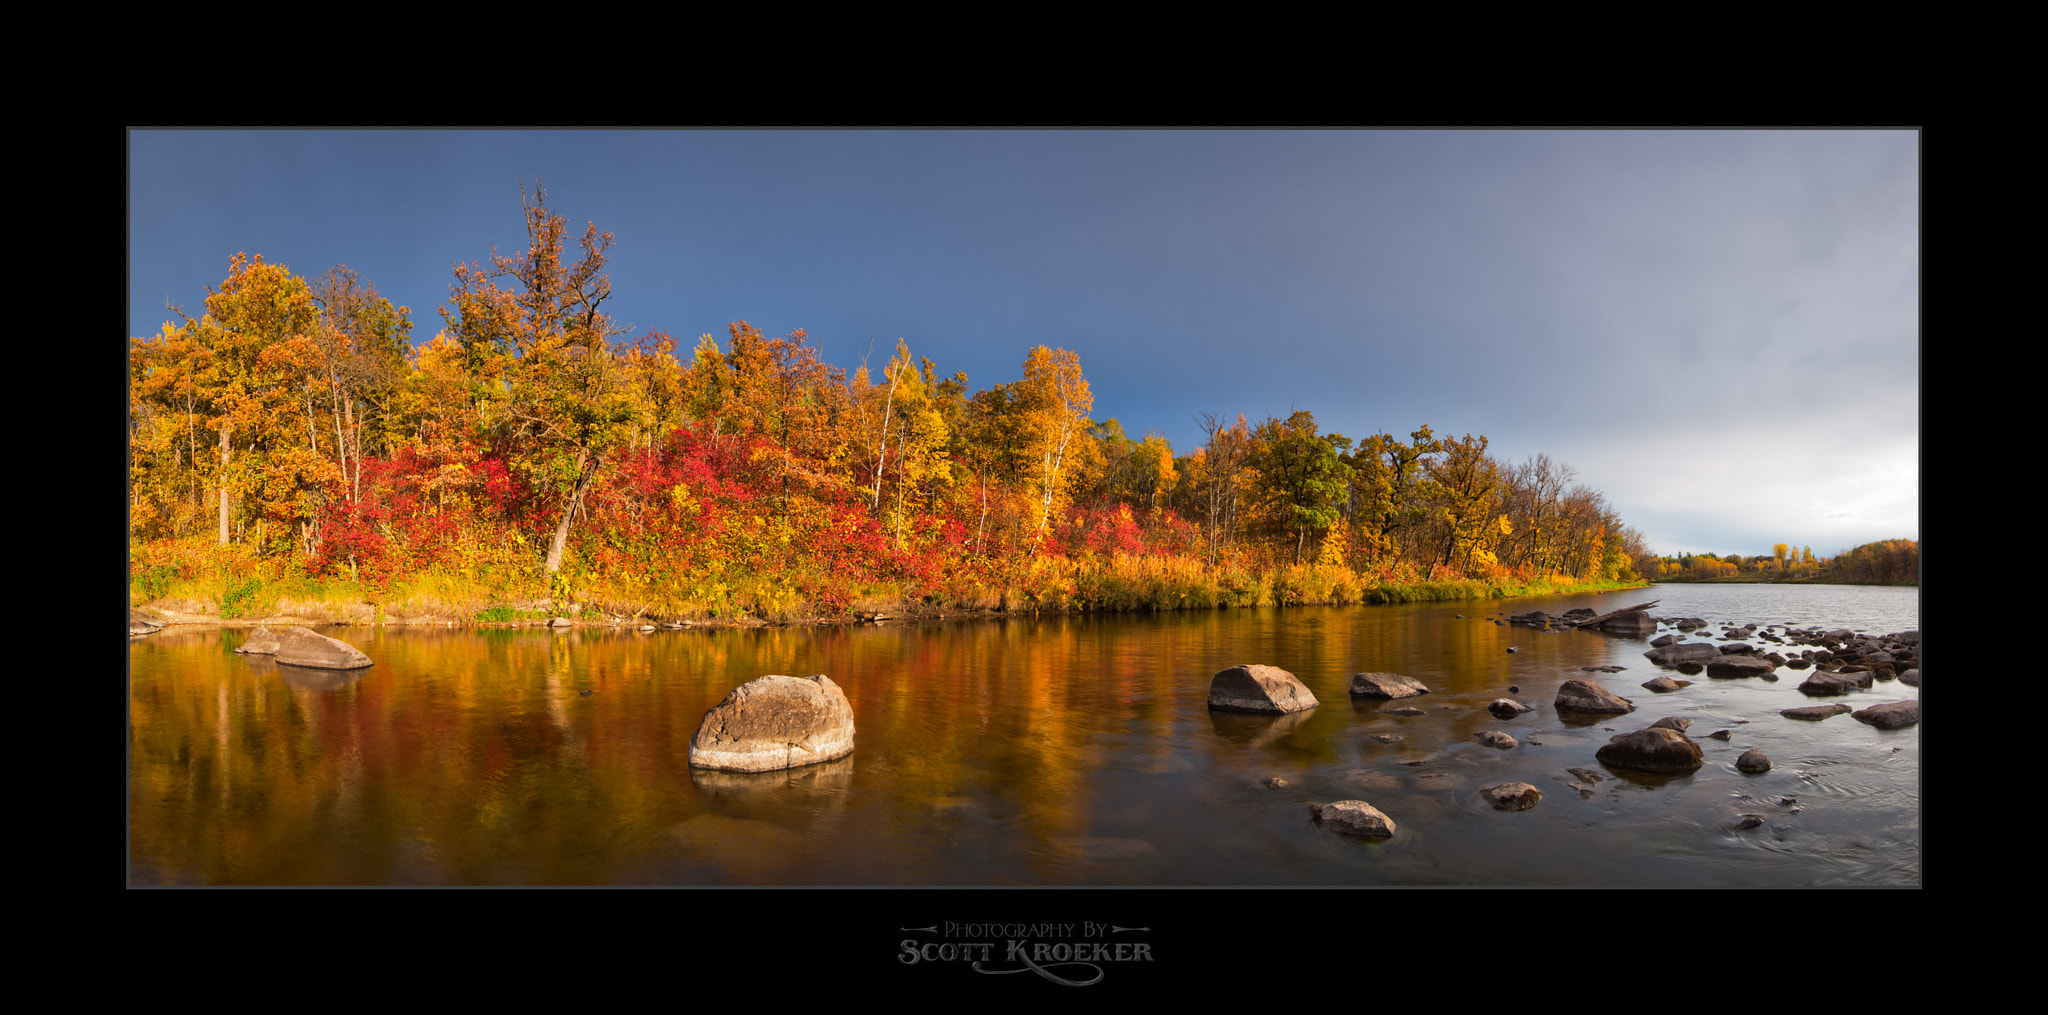 Photograph Autumn by Scott Kroeker on 500px